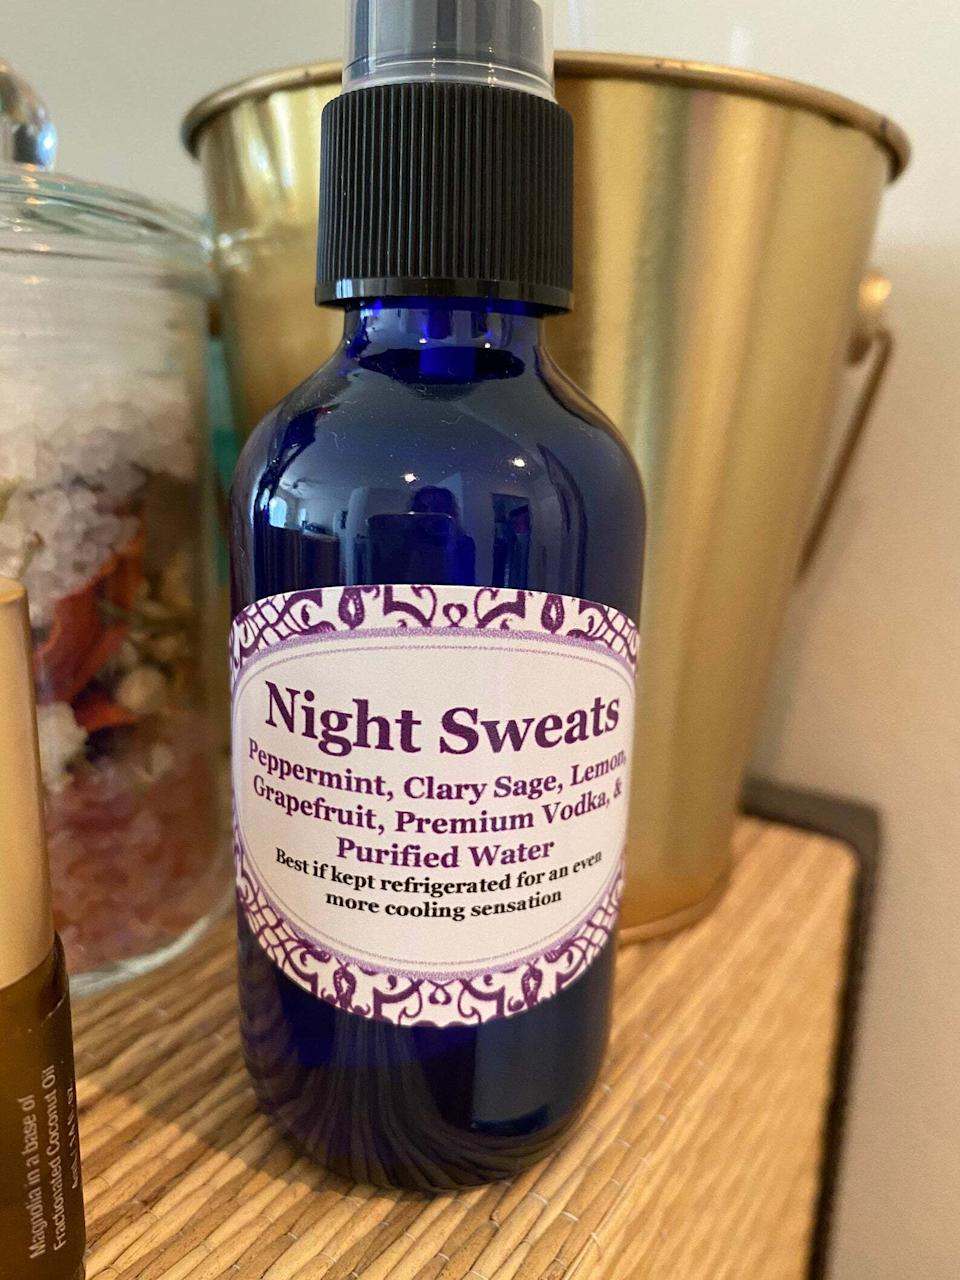 """It'sdesigned to be used when you wake up in the middle of the night in a pool of sweat. Just spray it onto your chest, neck and forearms to get some serious instant relief.Spa Shop by Susan is an essential oil and organic spa products Etsy shop.<br /><br /><strong><a href=""""https://go.skimresources.com?id=38395X987171&xs=1&xcust=HPProductsForHotSleepers-7-2021--60c0db4be4b0b449dc34948b-&url=https%3A%2F%2Fwww.etsy.com%2Flisting%2F543523523%2Fnight-sweats"""" target=""""_blank"""" rel=""""noopener noreferrer"""">Get it from Spa Shop by Susan on Etsy for $14.99.</a></strong>"""